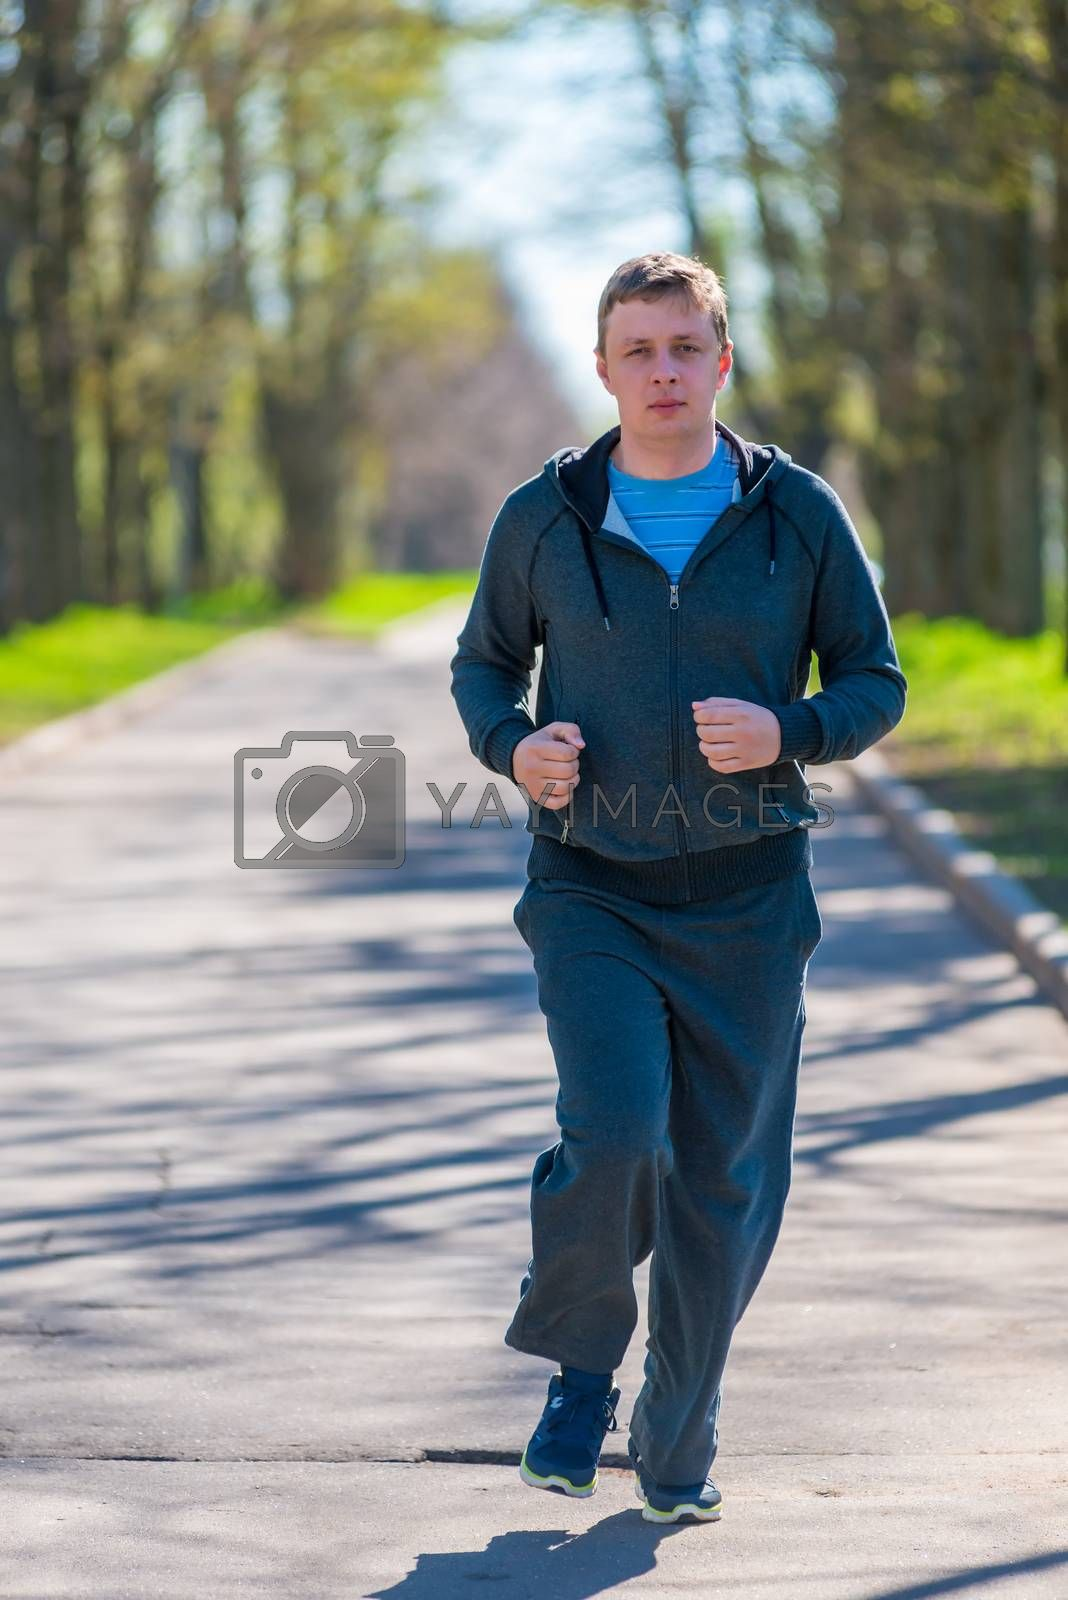 man leads a healthy lifestyle - morning runs